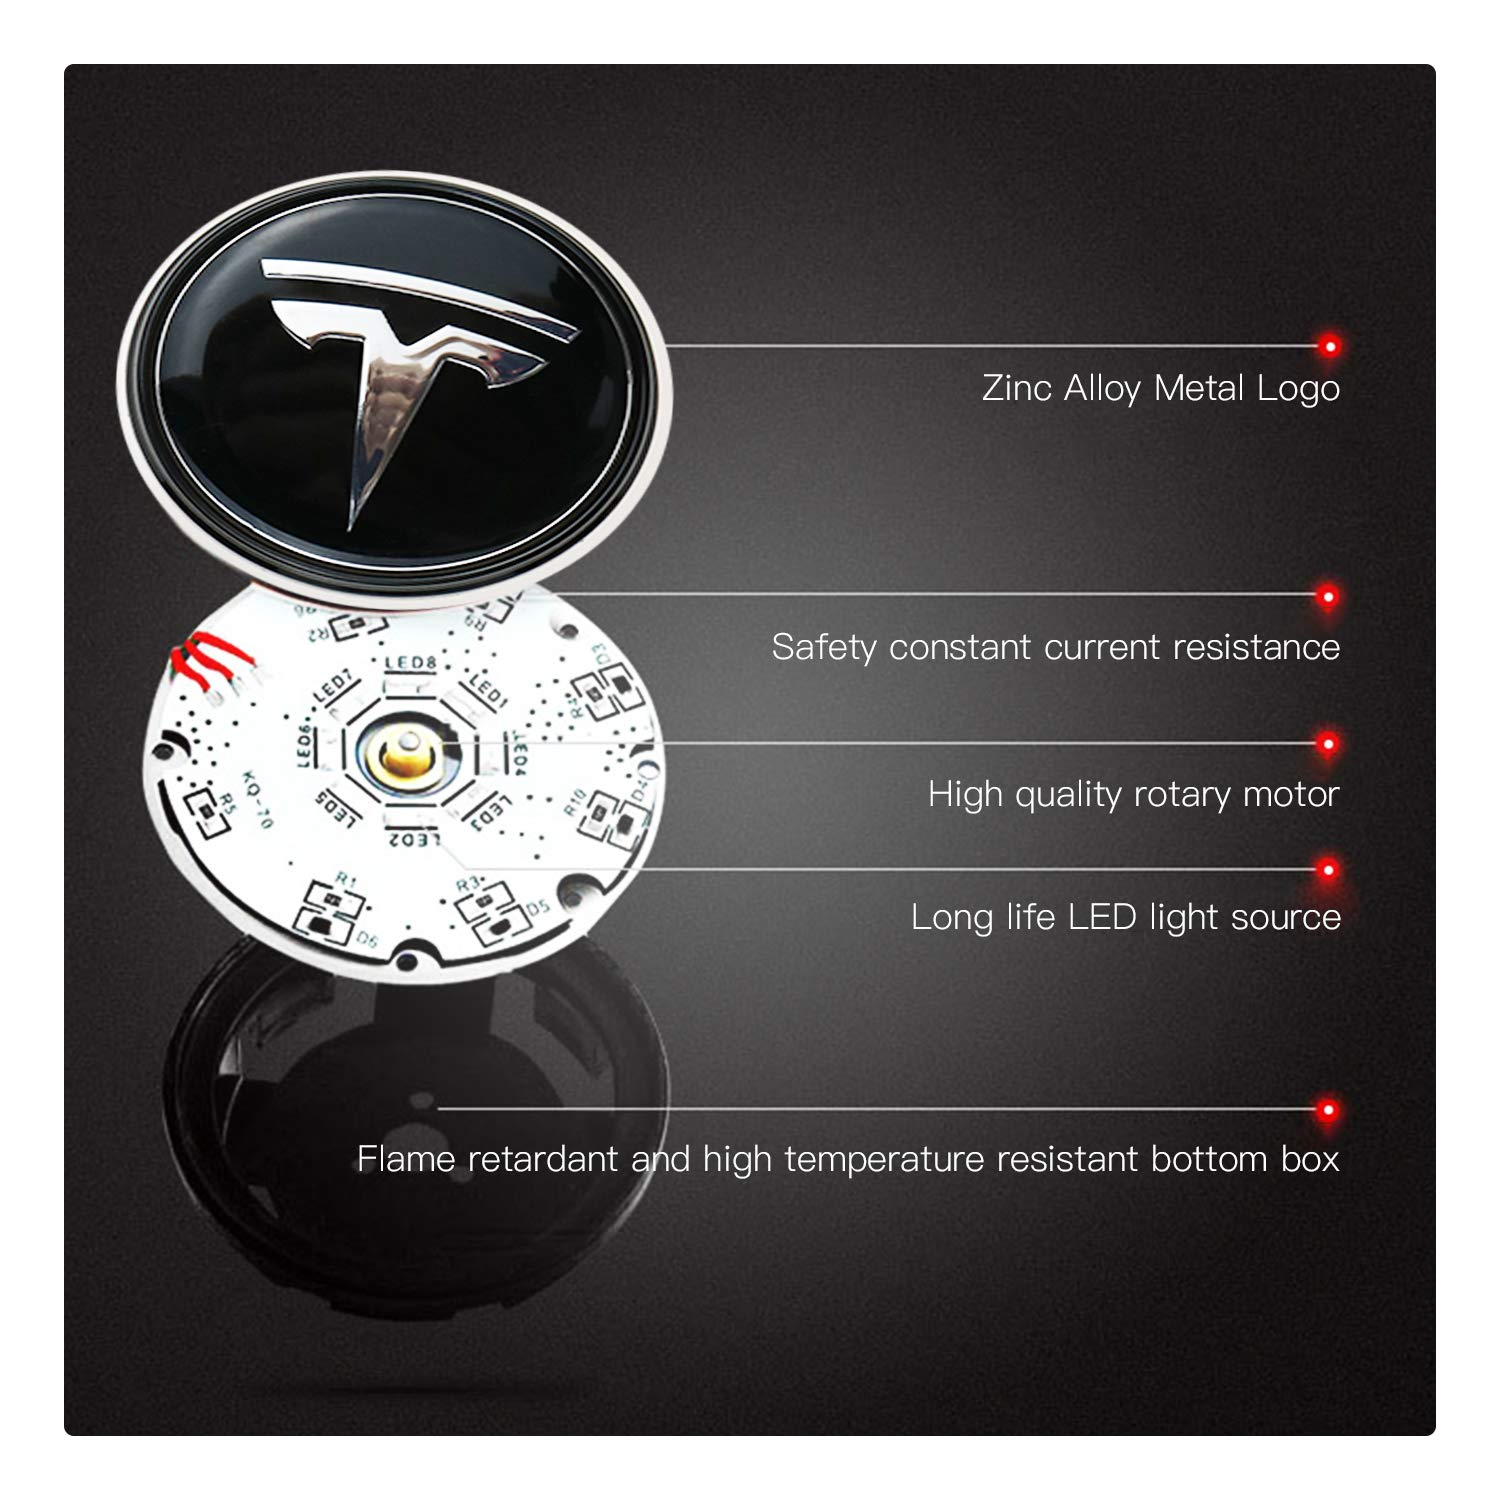 R RUIYA Tesla Model 3 S X Accessory 4PCS Wheel Logo Hub Center Caps Cover with Lights LED Car Modification Special Atmosphere Lamp